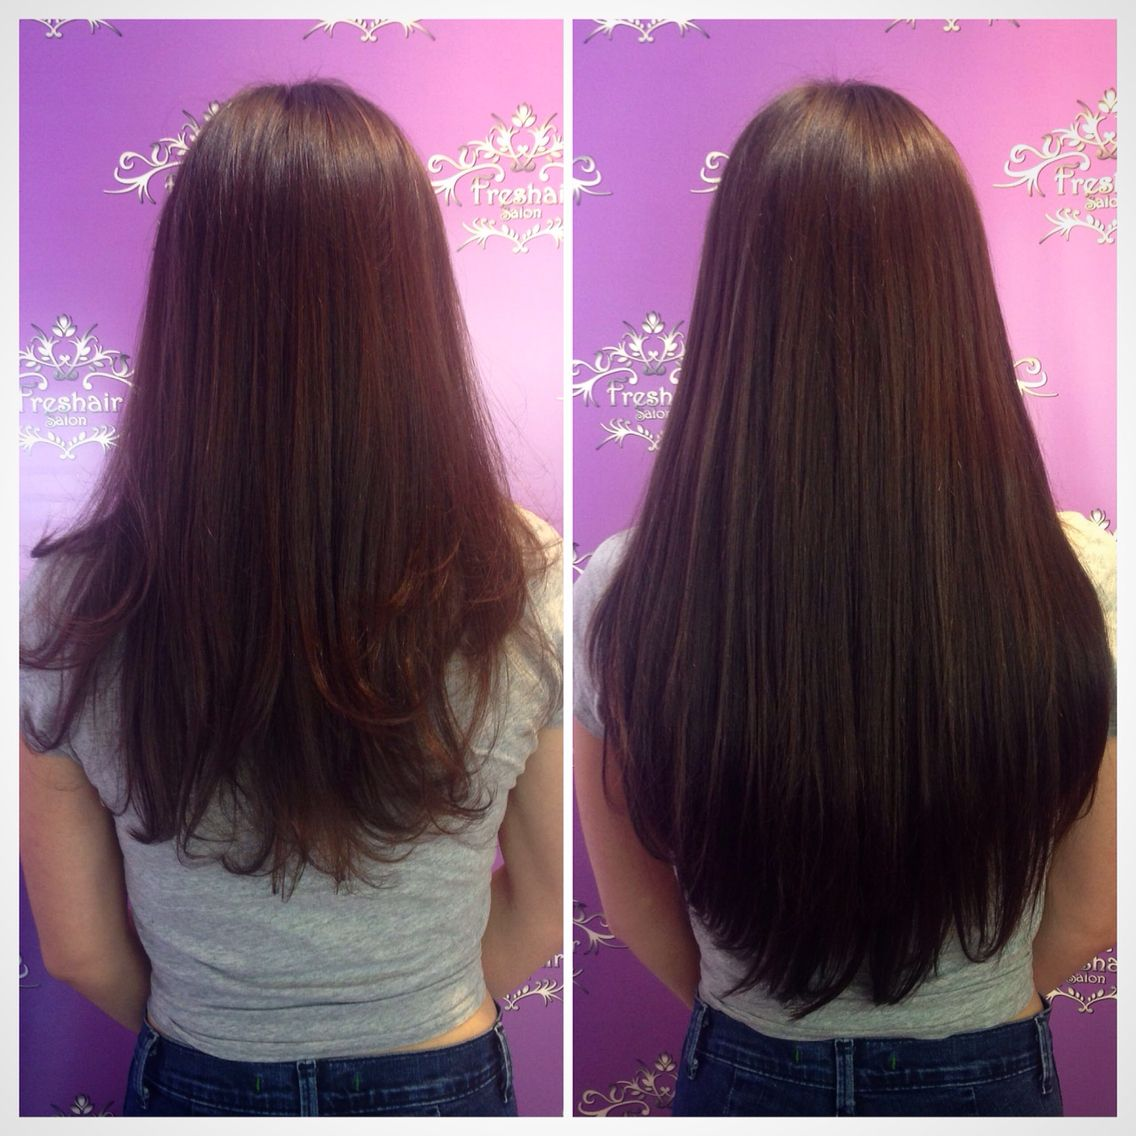 Create length and thickness with @hotheadshairextensions  Stylist- Shelby Lambidonis #justcallherkimk #longhairdontcare #extensions #hotheads #fayettevillear #freshairsalon #freshairstylist